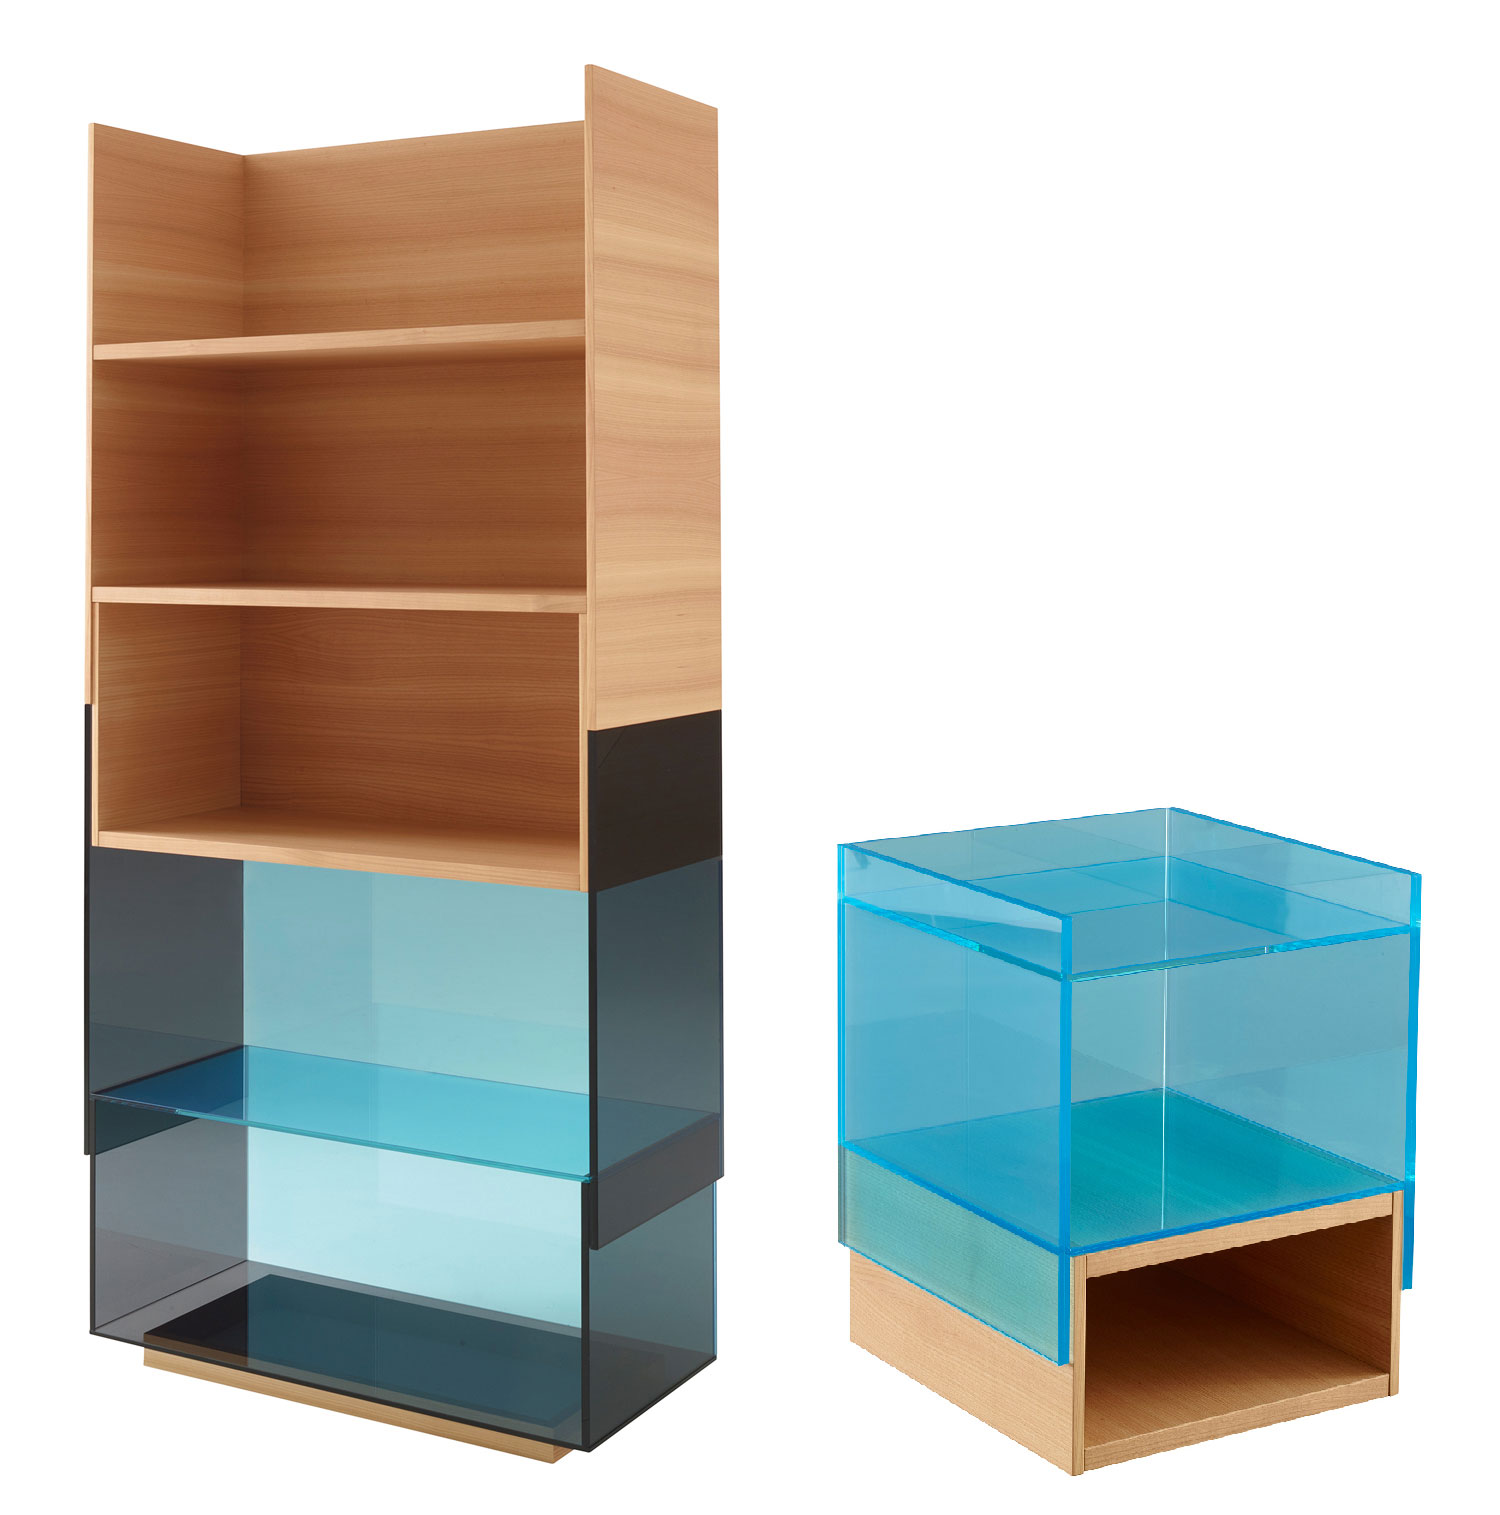 Hampton shelving unit and side table Ligne Roset | Yellowtrace